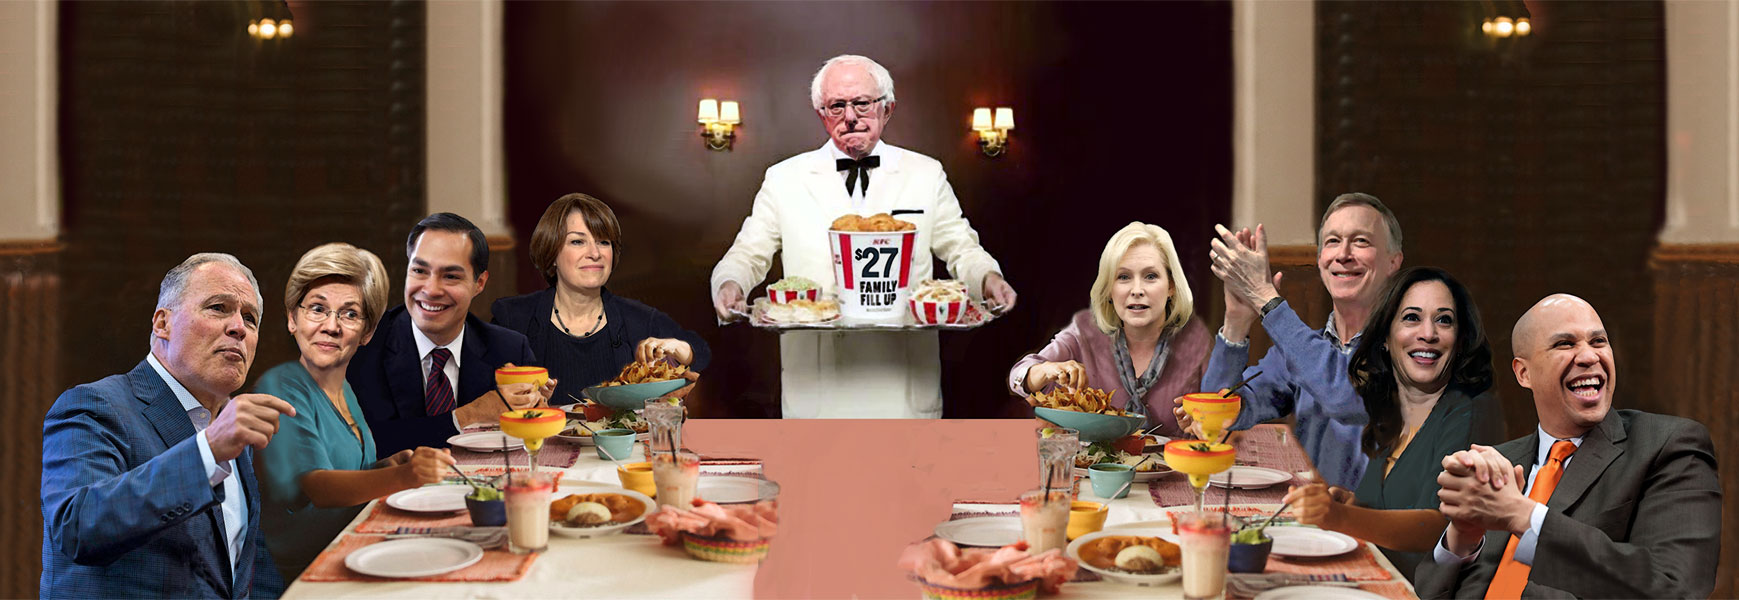 2020 DEMOCRATIC CANDIDATE DINNER